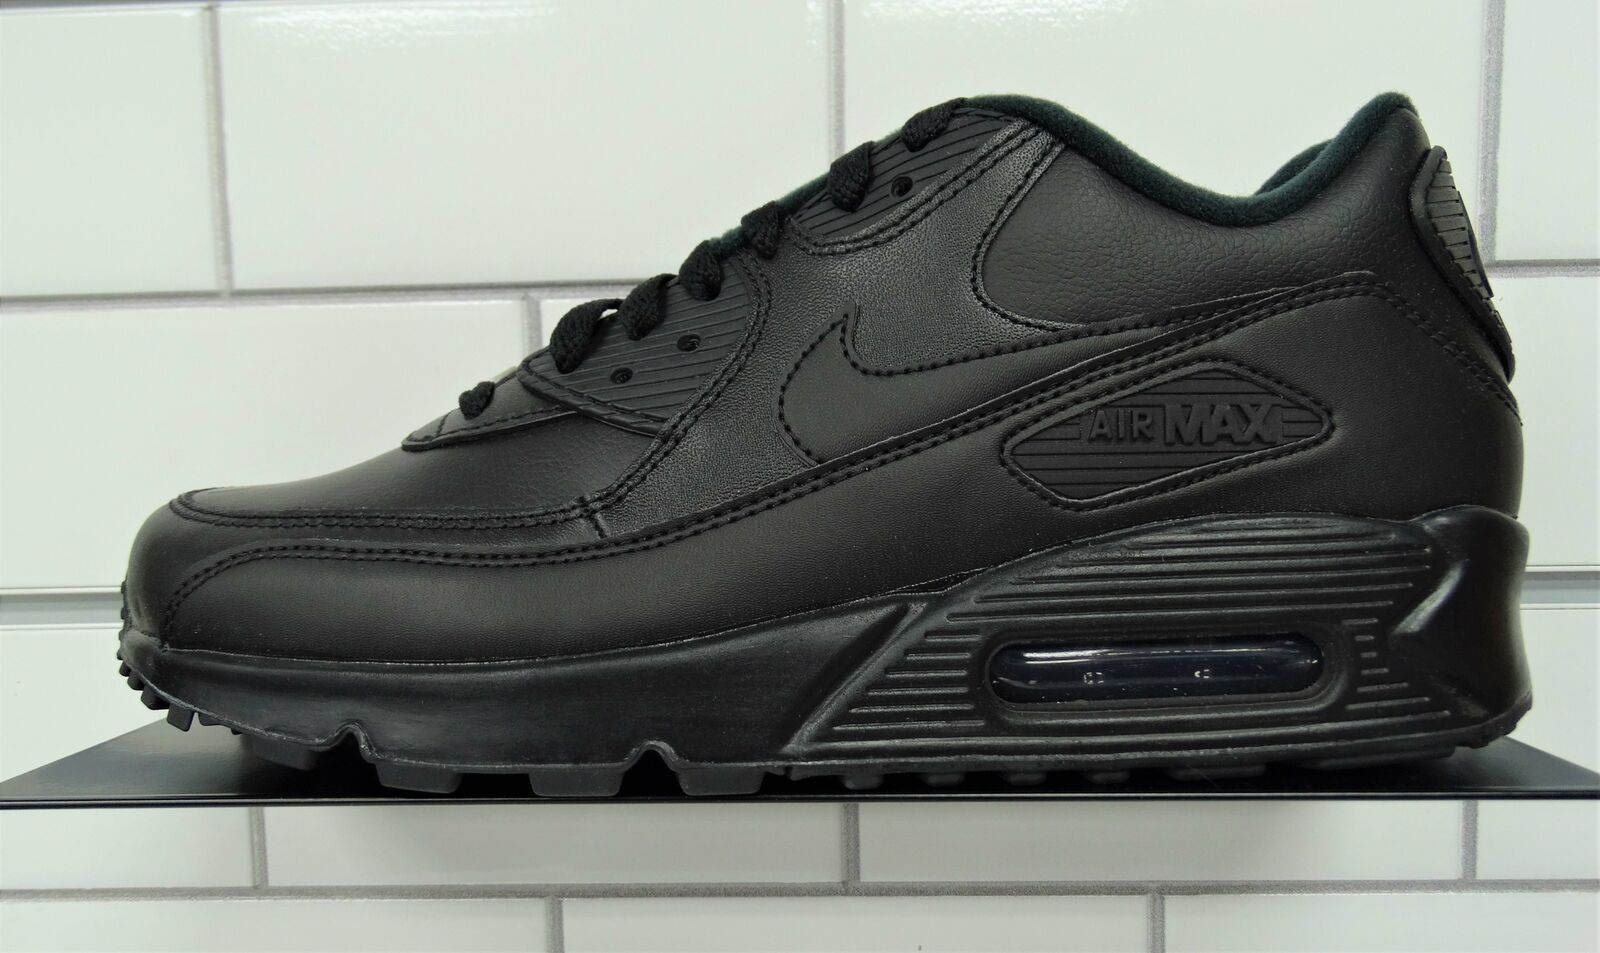 Nike Air Max 90 Leather, Black